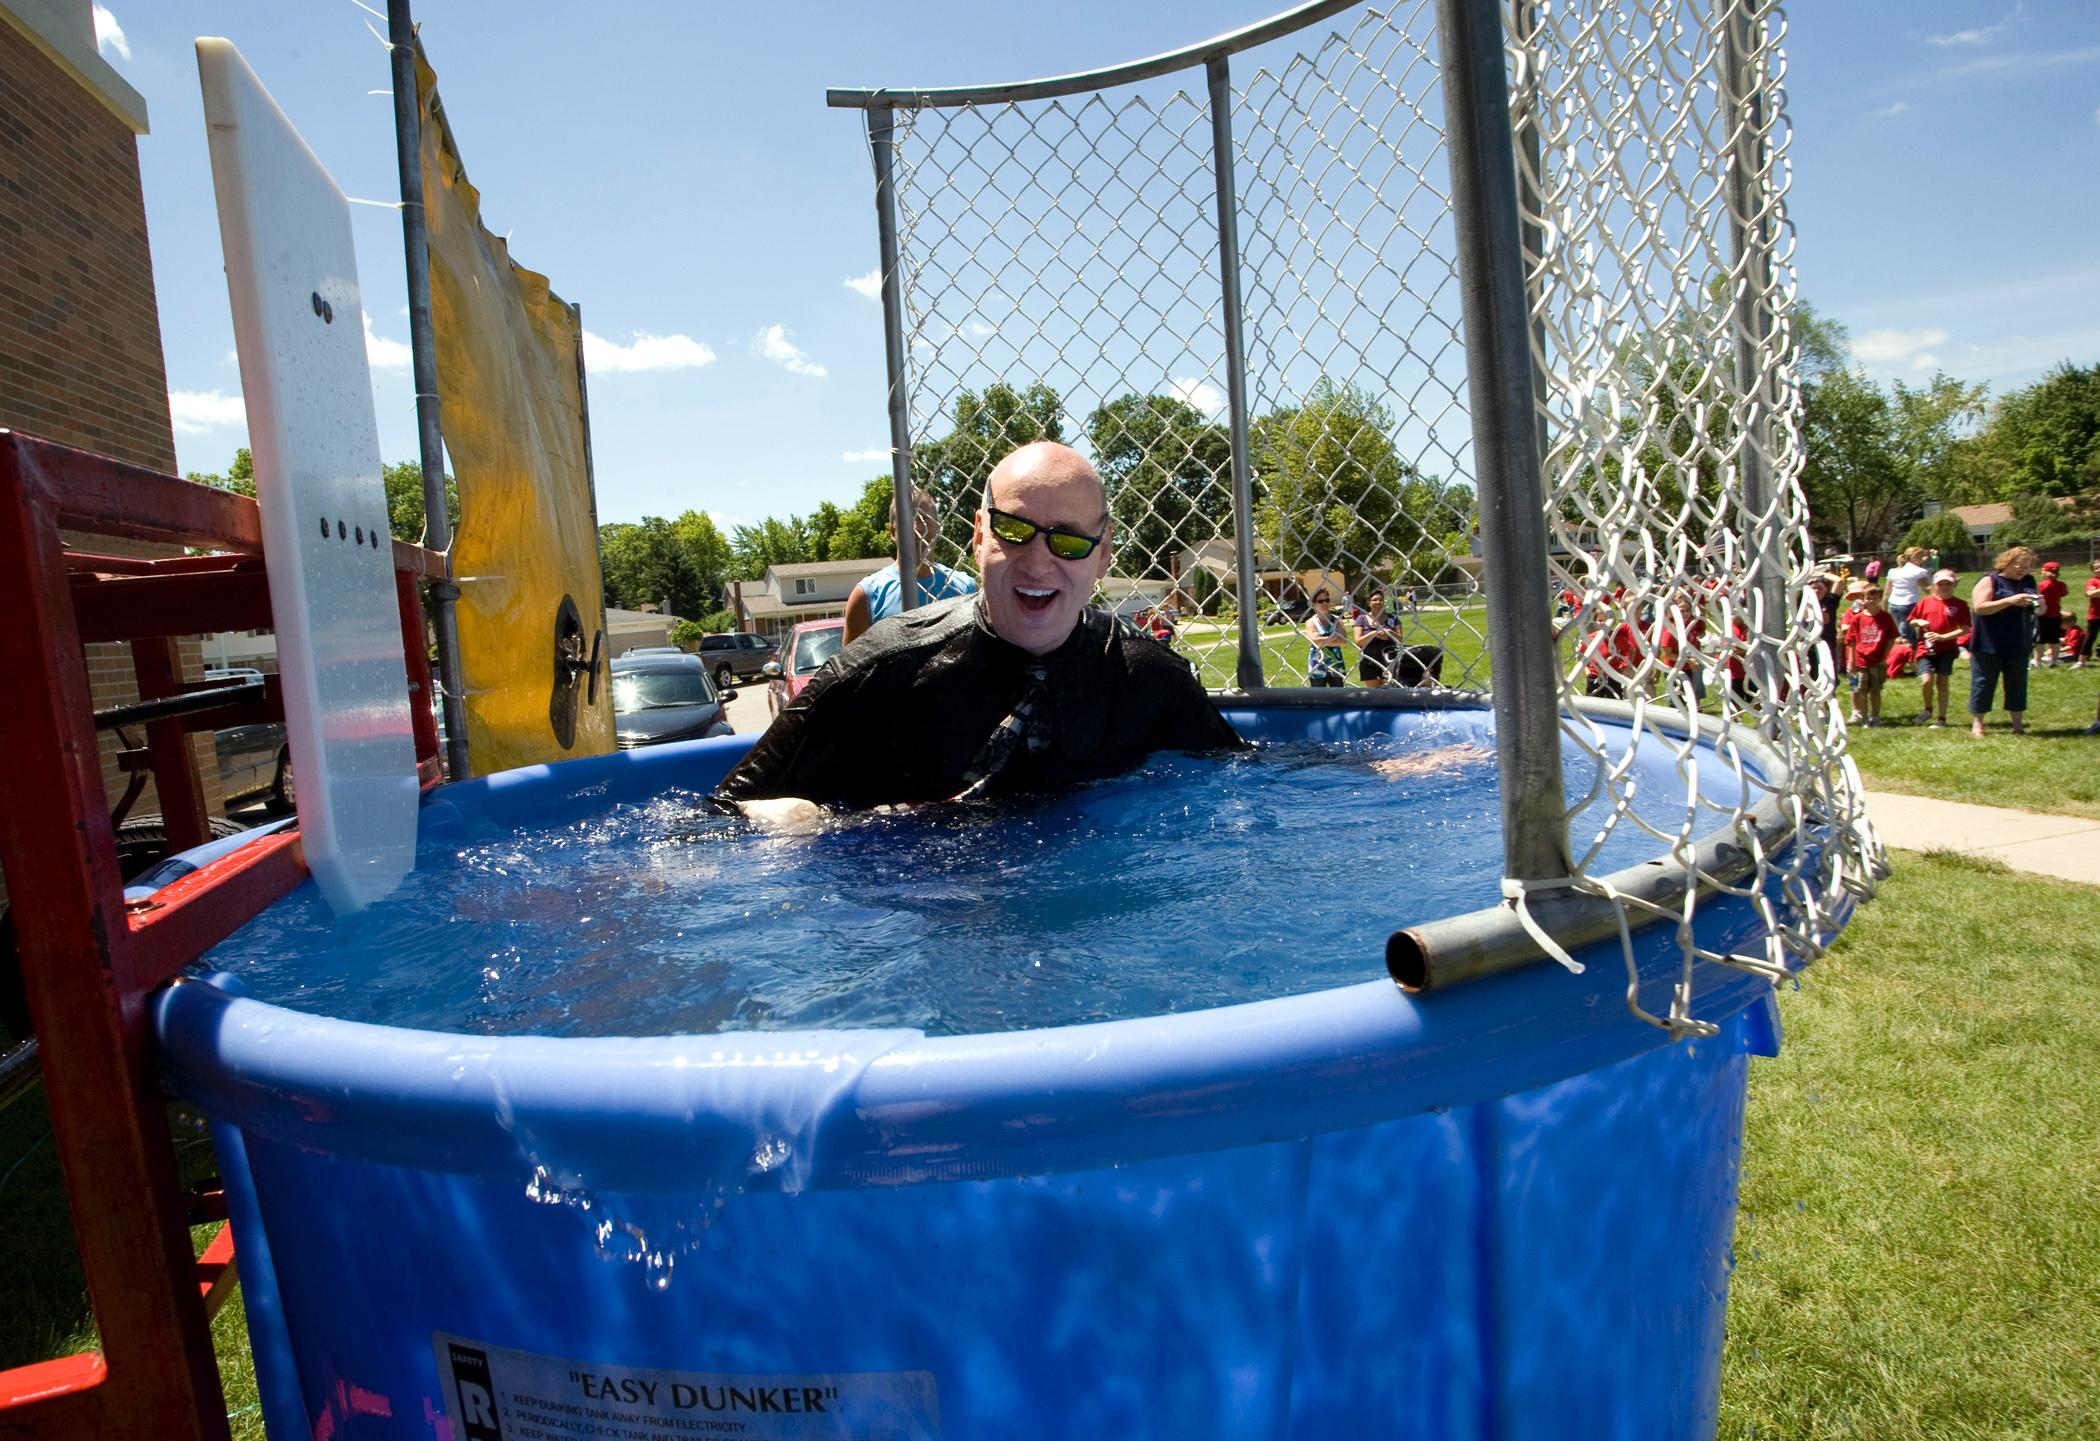 Dunk tank rentals are super easy in Portland Oregon